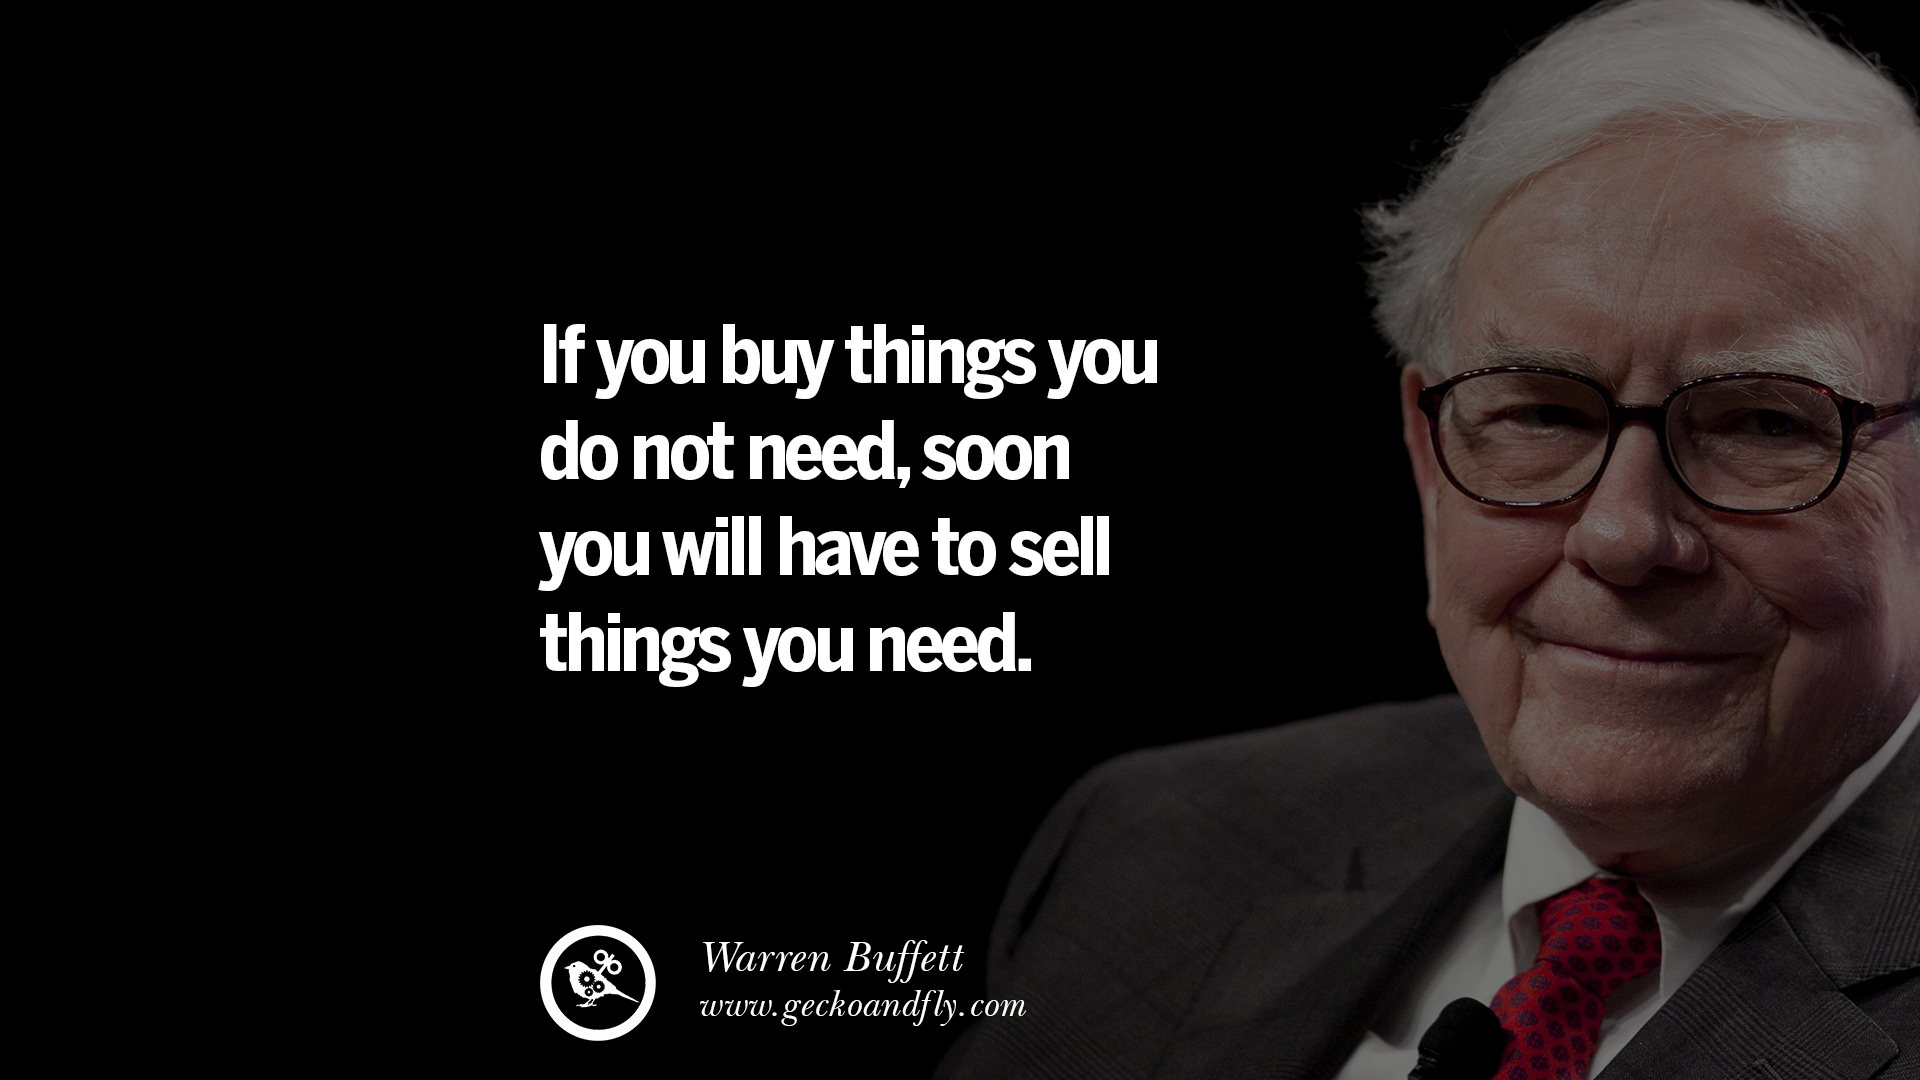 Greatest Quotes On Life 12 Best Warren Buffett Quotes On Investment Life And Making Money